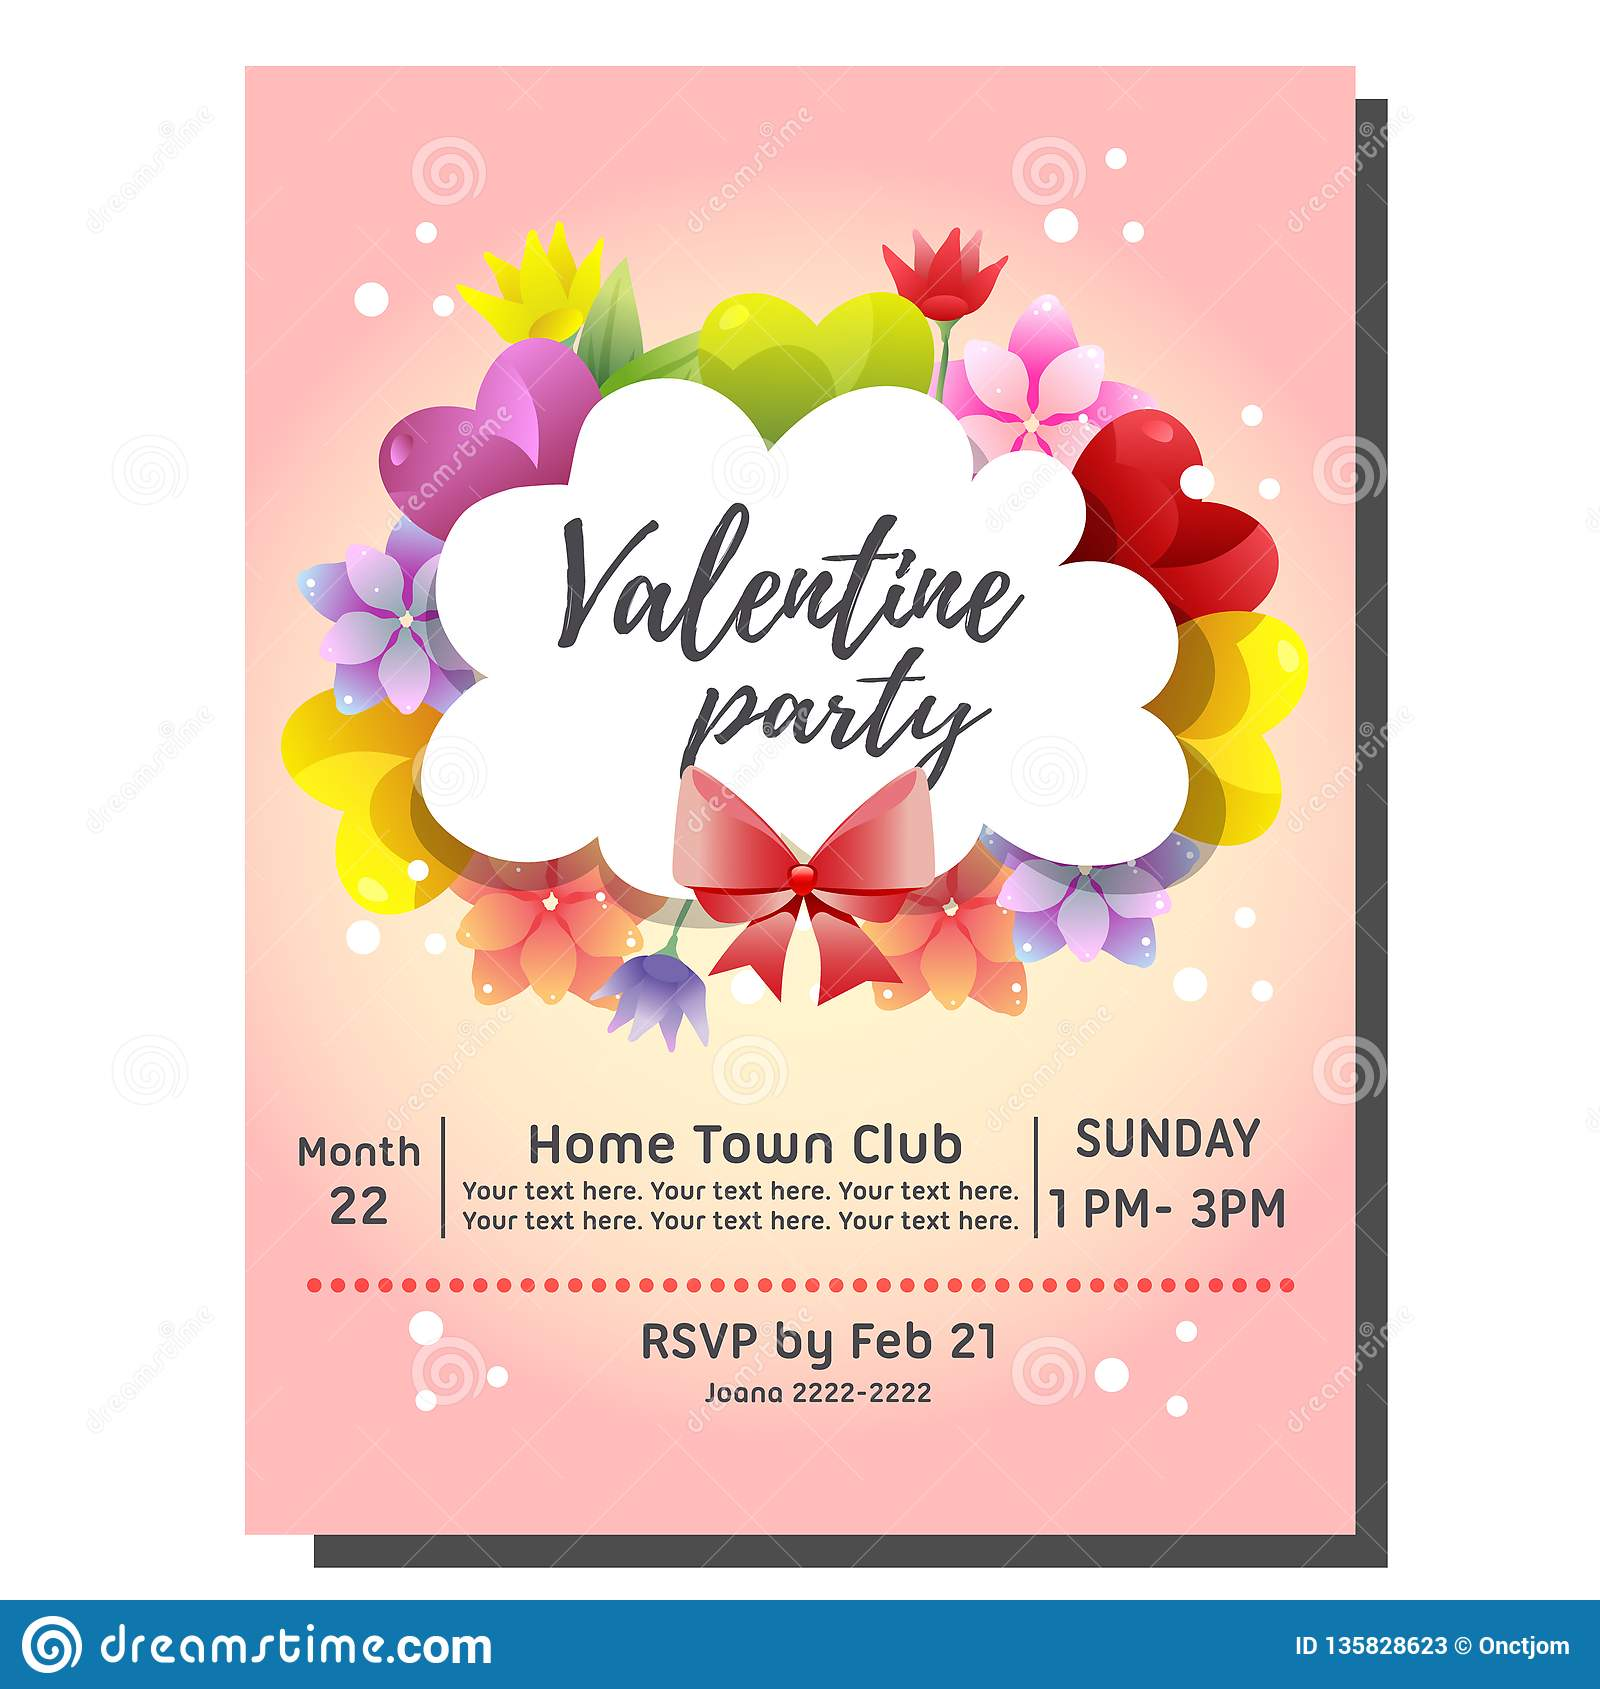 Colorful Valentine Party Invitation Card With Colorful